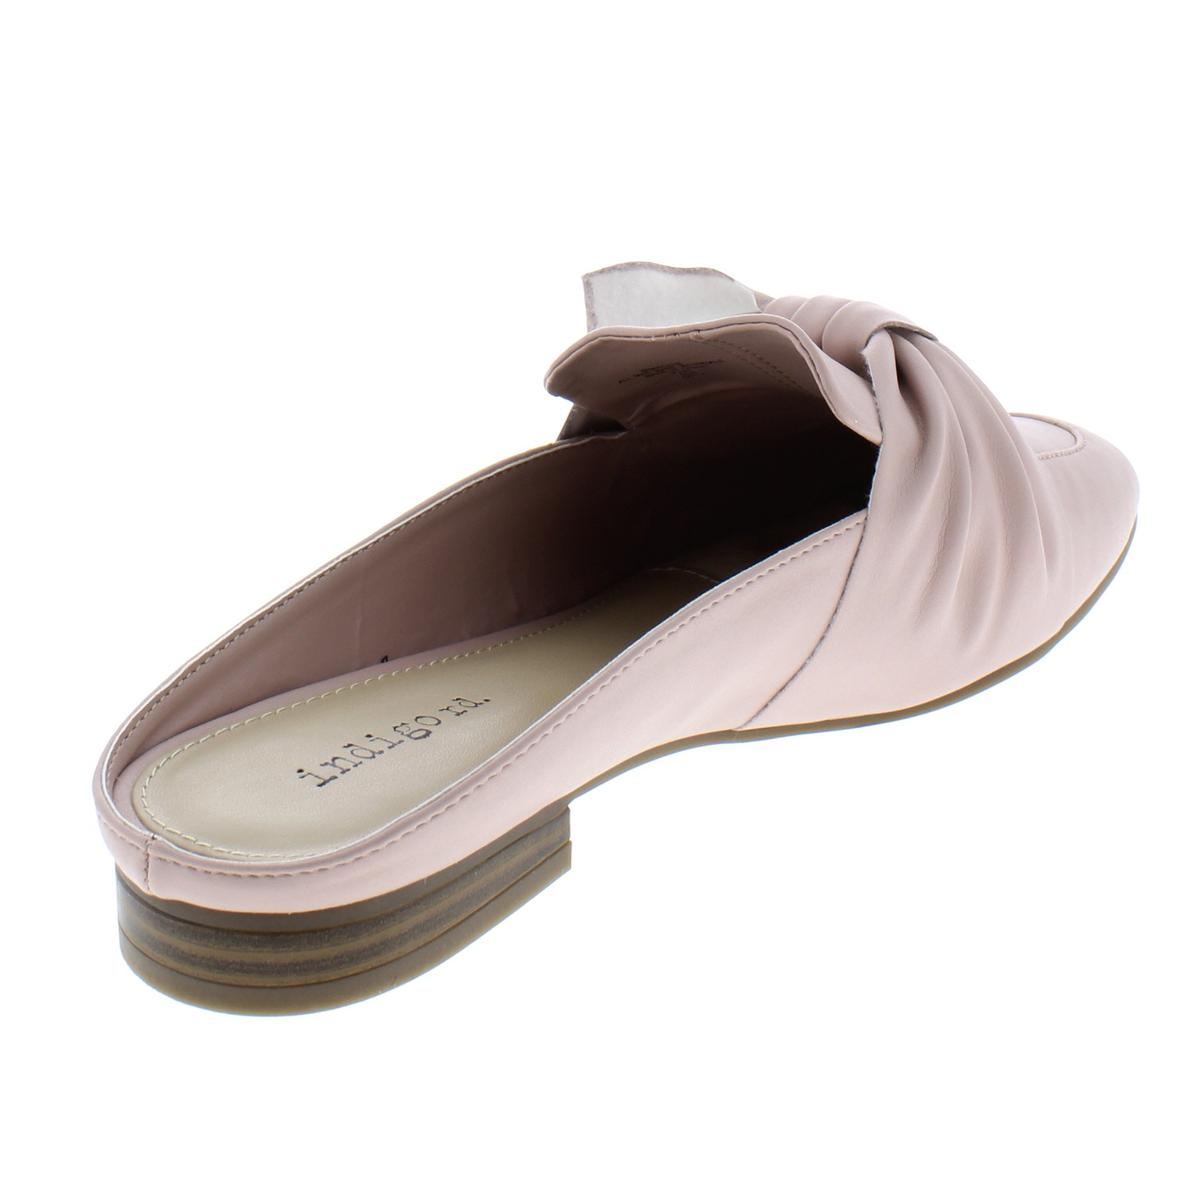 Indigo-Rd-Womens-Maggie-Faux-Leather-Almond-Toe-Loafer-Mule-Flats-BHFO-4720 thumbnail 6